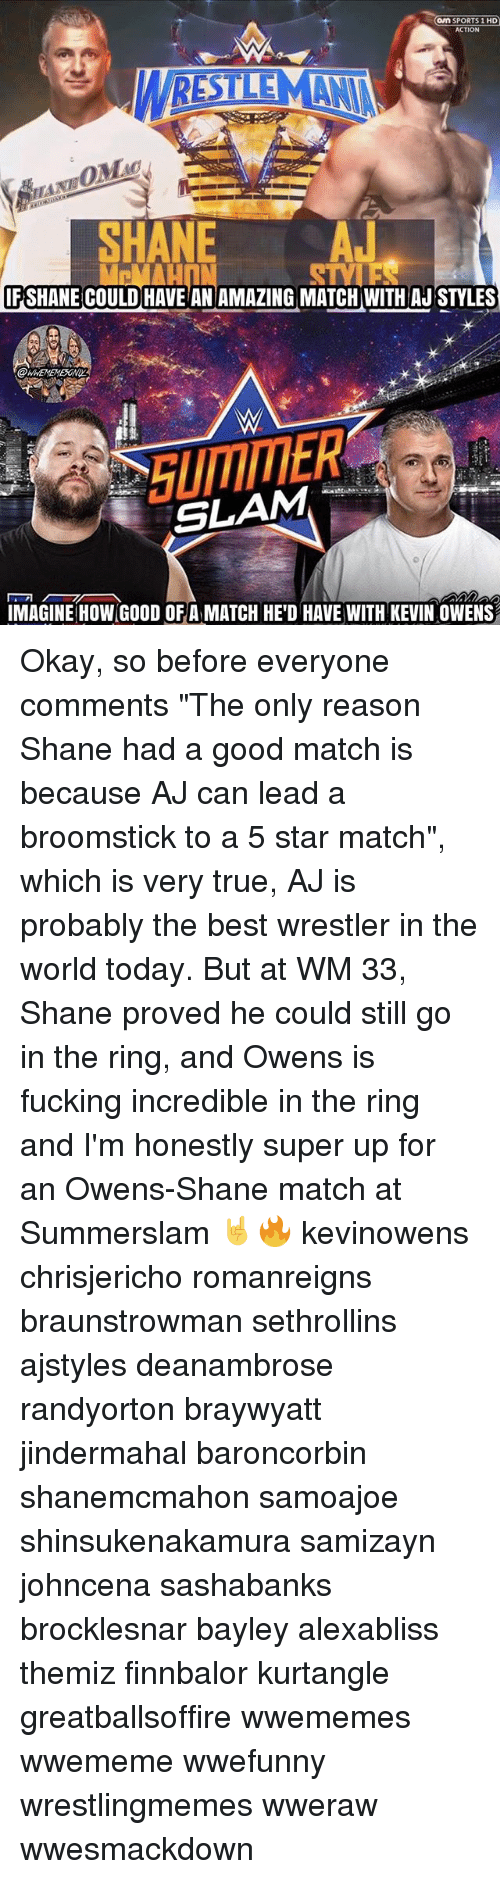 """Bayley: on SPORTS 1 HD  ACTION  SNE A  HA  FSHANE COULD HAVE ANAMAZING MATCH WITH AJ STYLES  SLAM-' 개  IMAGINE HOW GOOD OFA MATCH HE'D HAVE WITH KEVIN OWENS Okay, so before everyone comments """"The only reason Shane had a good match is because AJ can lead a broomstick to a 5 star match"""", which is very true, AJ is probably the best wrestler in the world today. But at WM 33, Shane proved he could still go in the ring, and Owens is fucking incredible in the ring and I'm honestly super up for an Owens-Shane match at Summerslam 🤘🔥 kevinowens chrisjericho romanreigns braunstrowman sethrollins ajstyles deanambrose randyorton braywyatt jindermahal baroncorbin shanemcmahon samoajoe shinsukenakamura samizayn johncena sashabanks brocklesnar bayley alexabliss themiz finnbalor kurtangle greatballsoffire wwememes wwememe wwefunny wrestlingmemes wweraw wwesmackdown"""